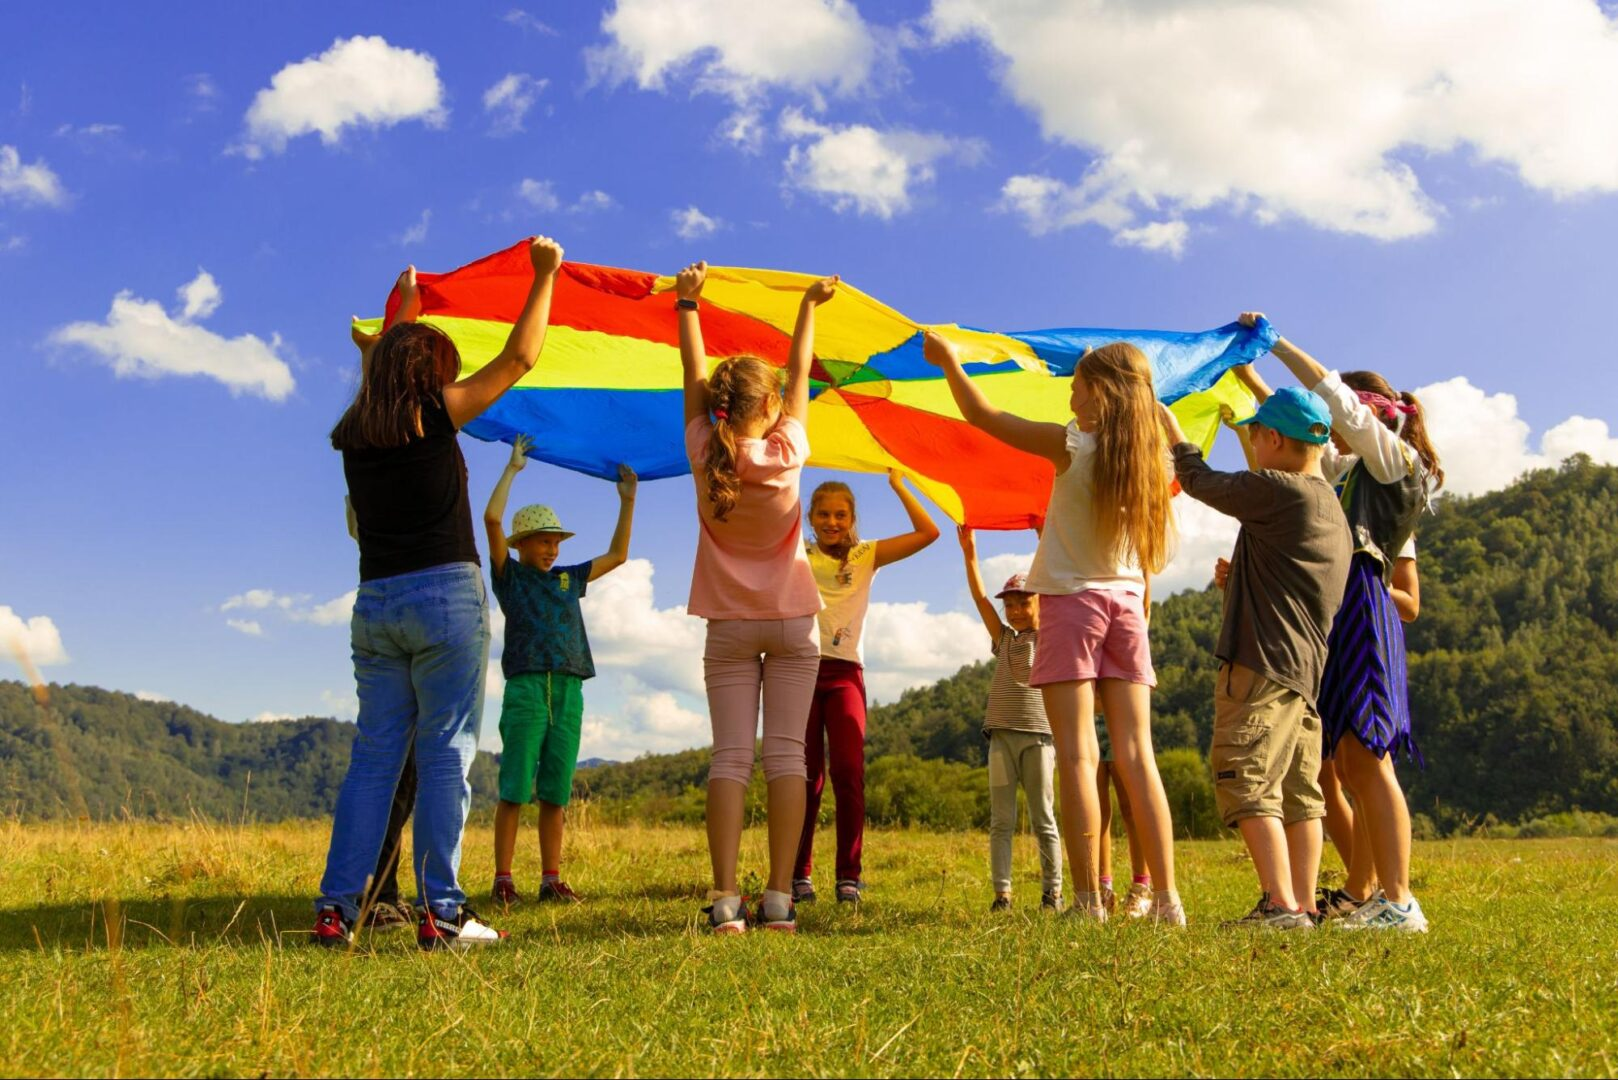 Kids playing, find summer camps in Franklin, TN on FranklinIs, kids activities and events, fun for all ages!